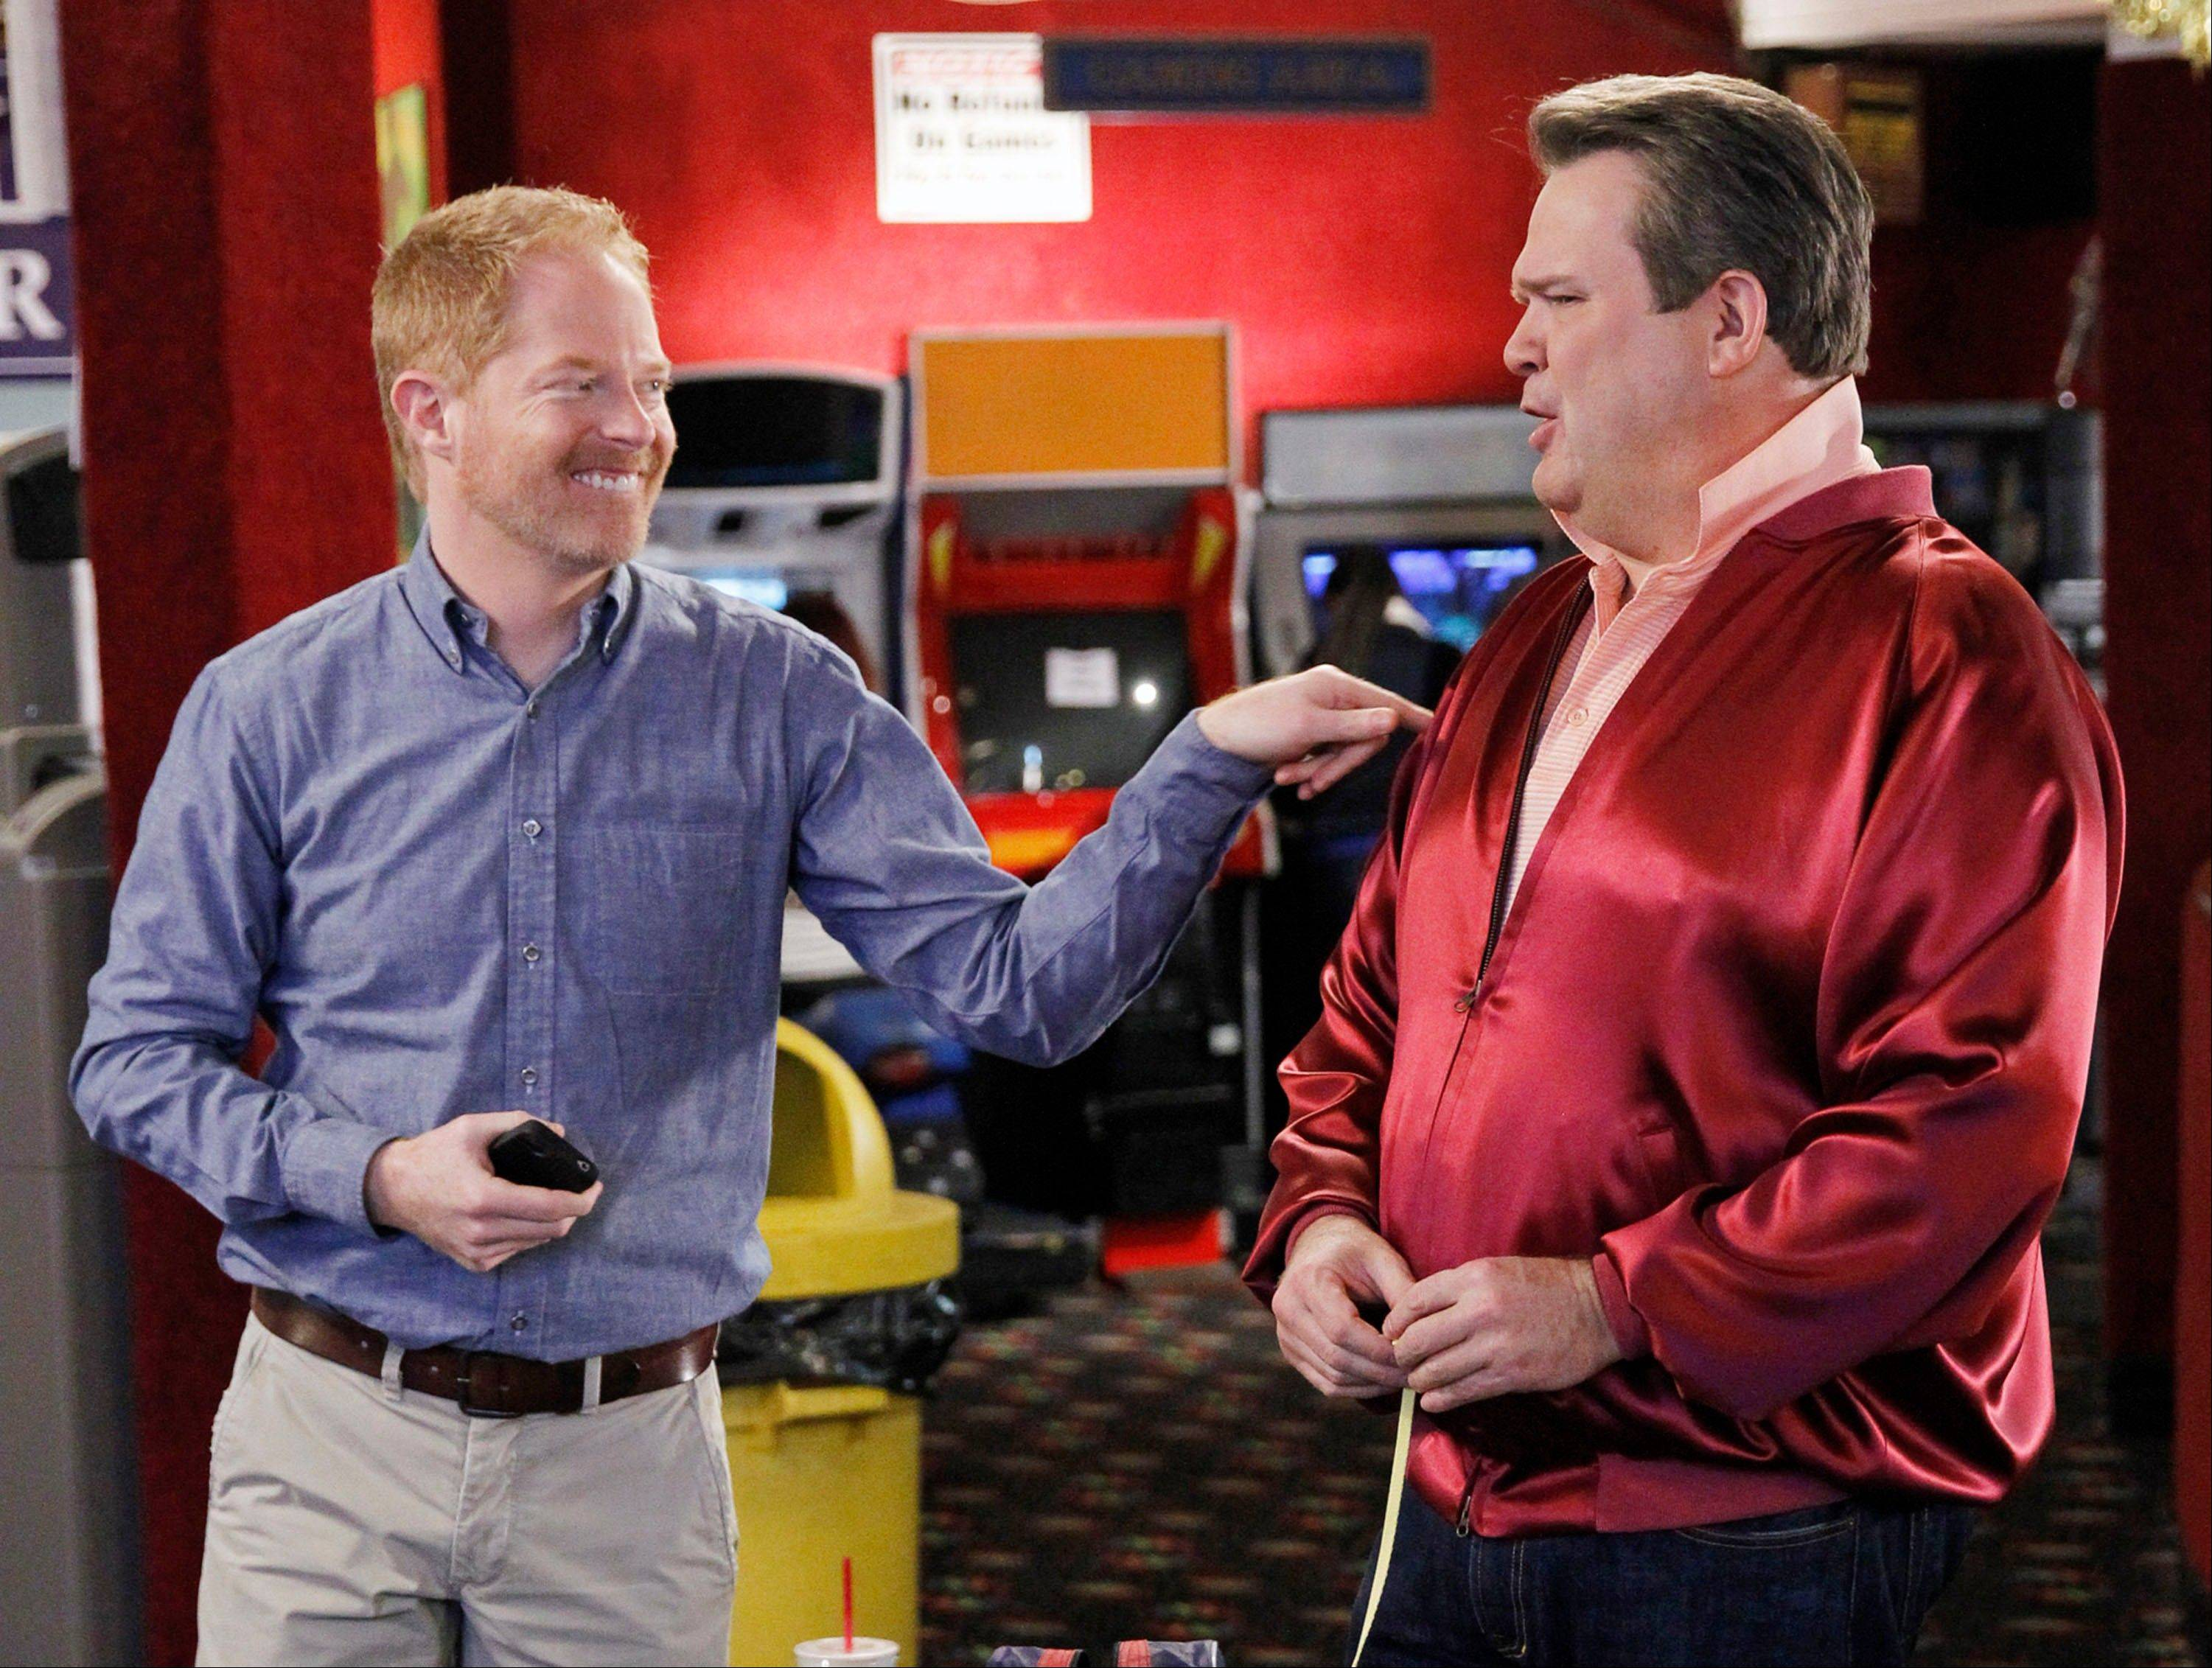 "This TV publicity image released by ABC shows Eric Stonestreet, as Cameron, right, and Jesse Tyler Ferguson as Mitchell in a scene from the comedy ""Modern Family."" While Fox broadcasts over the airwaves, if customers drop their pay-TV service and use Aereo, broadcasters would lose some of that revenue."